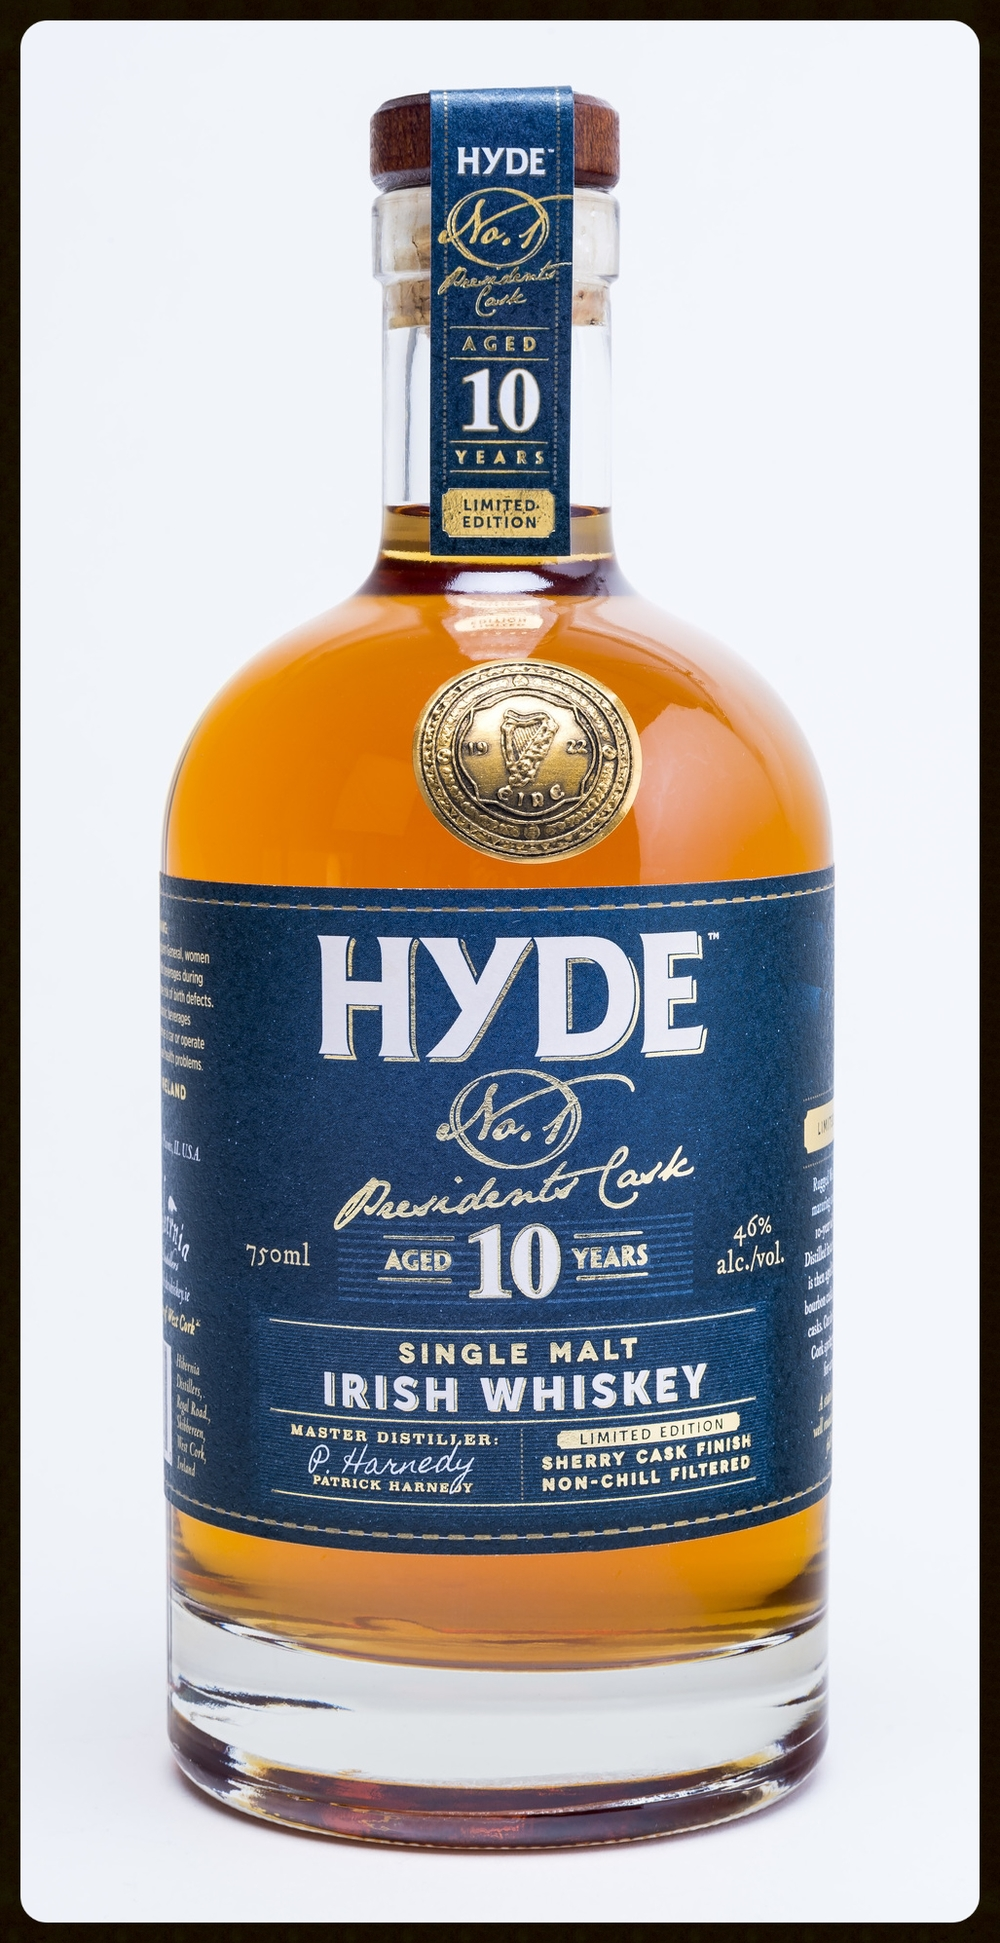 HYDE Presidents Cask Irish Whiskey